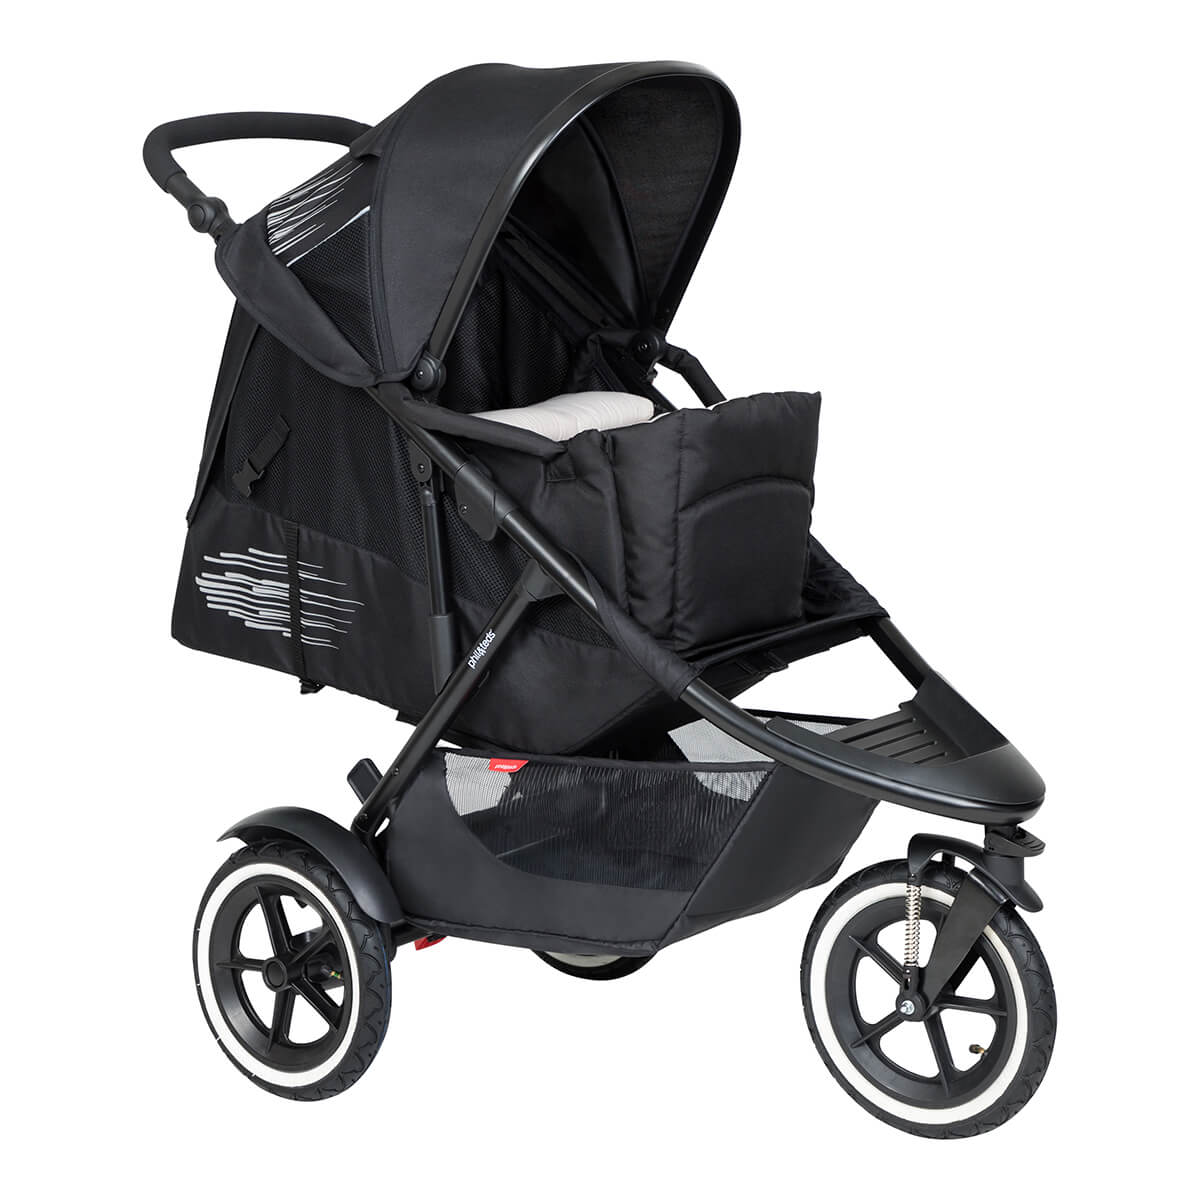 https://cdn.accentuate.io/4513462550624/19440099360952/philteds-sport-buggy-with-cocoon-full-recline-v1626486530036.jpg?1200x1200